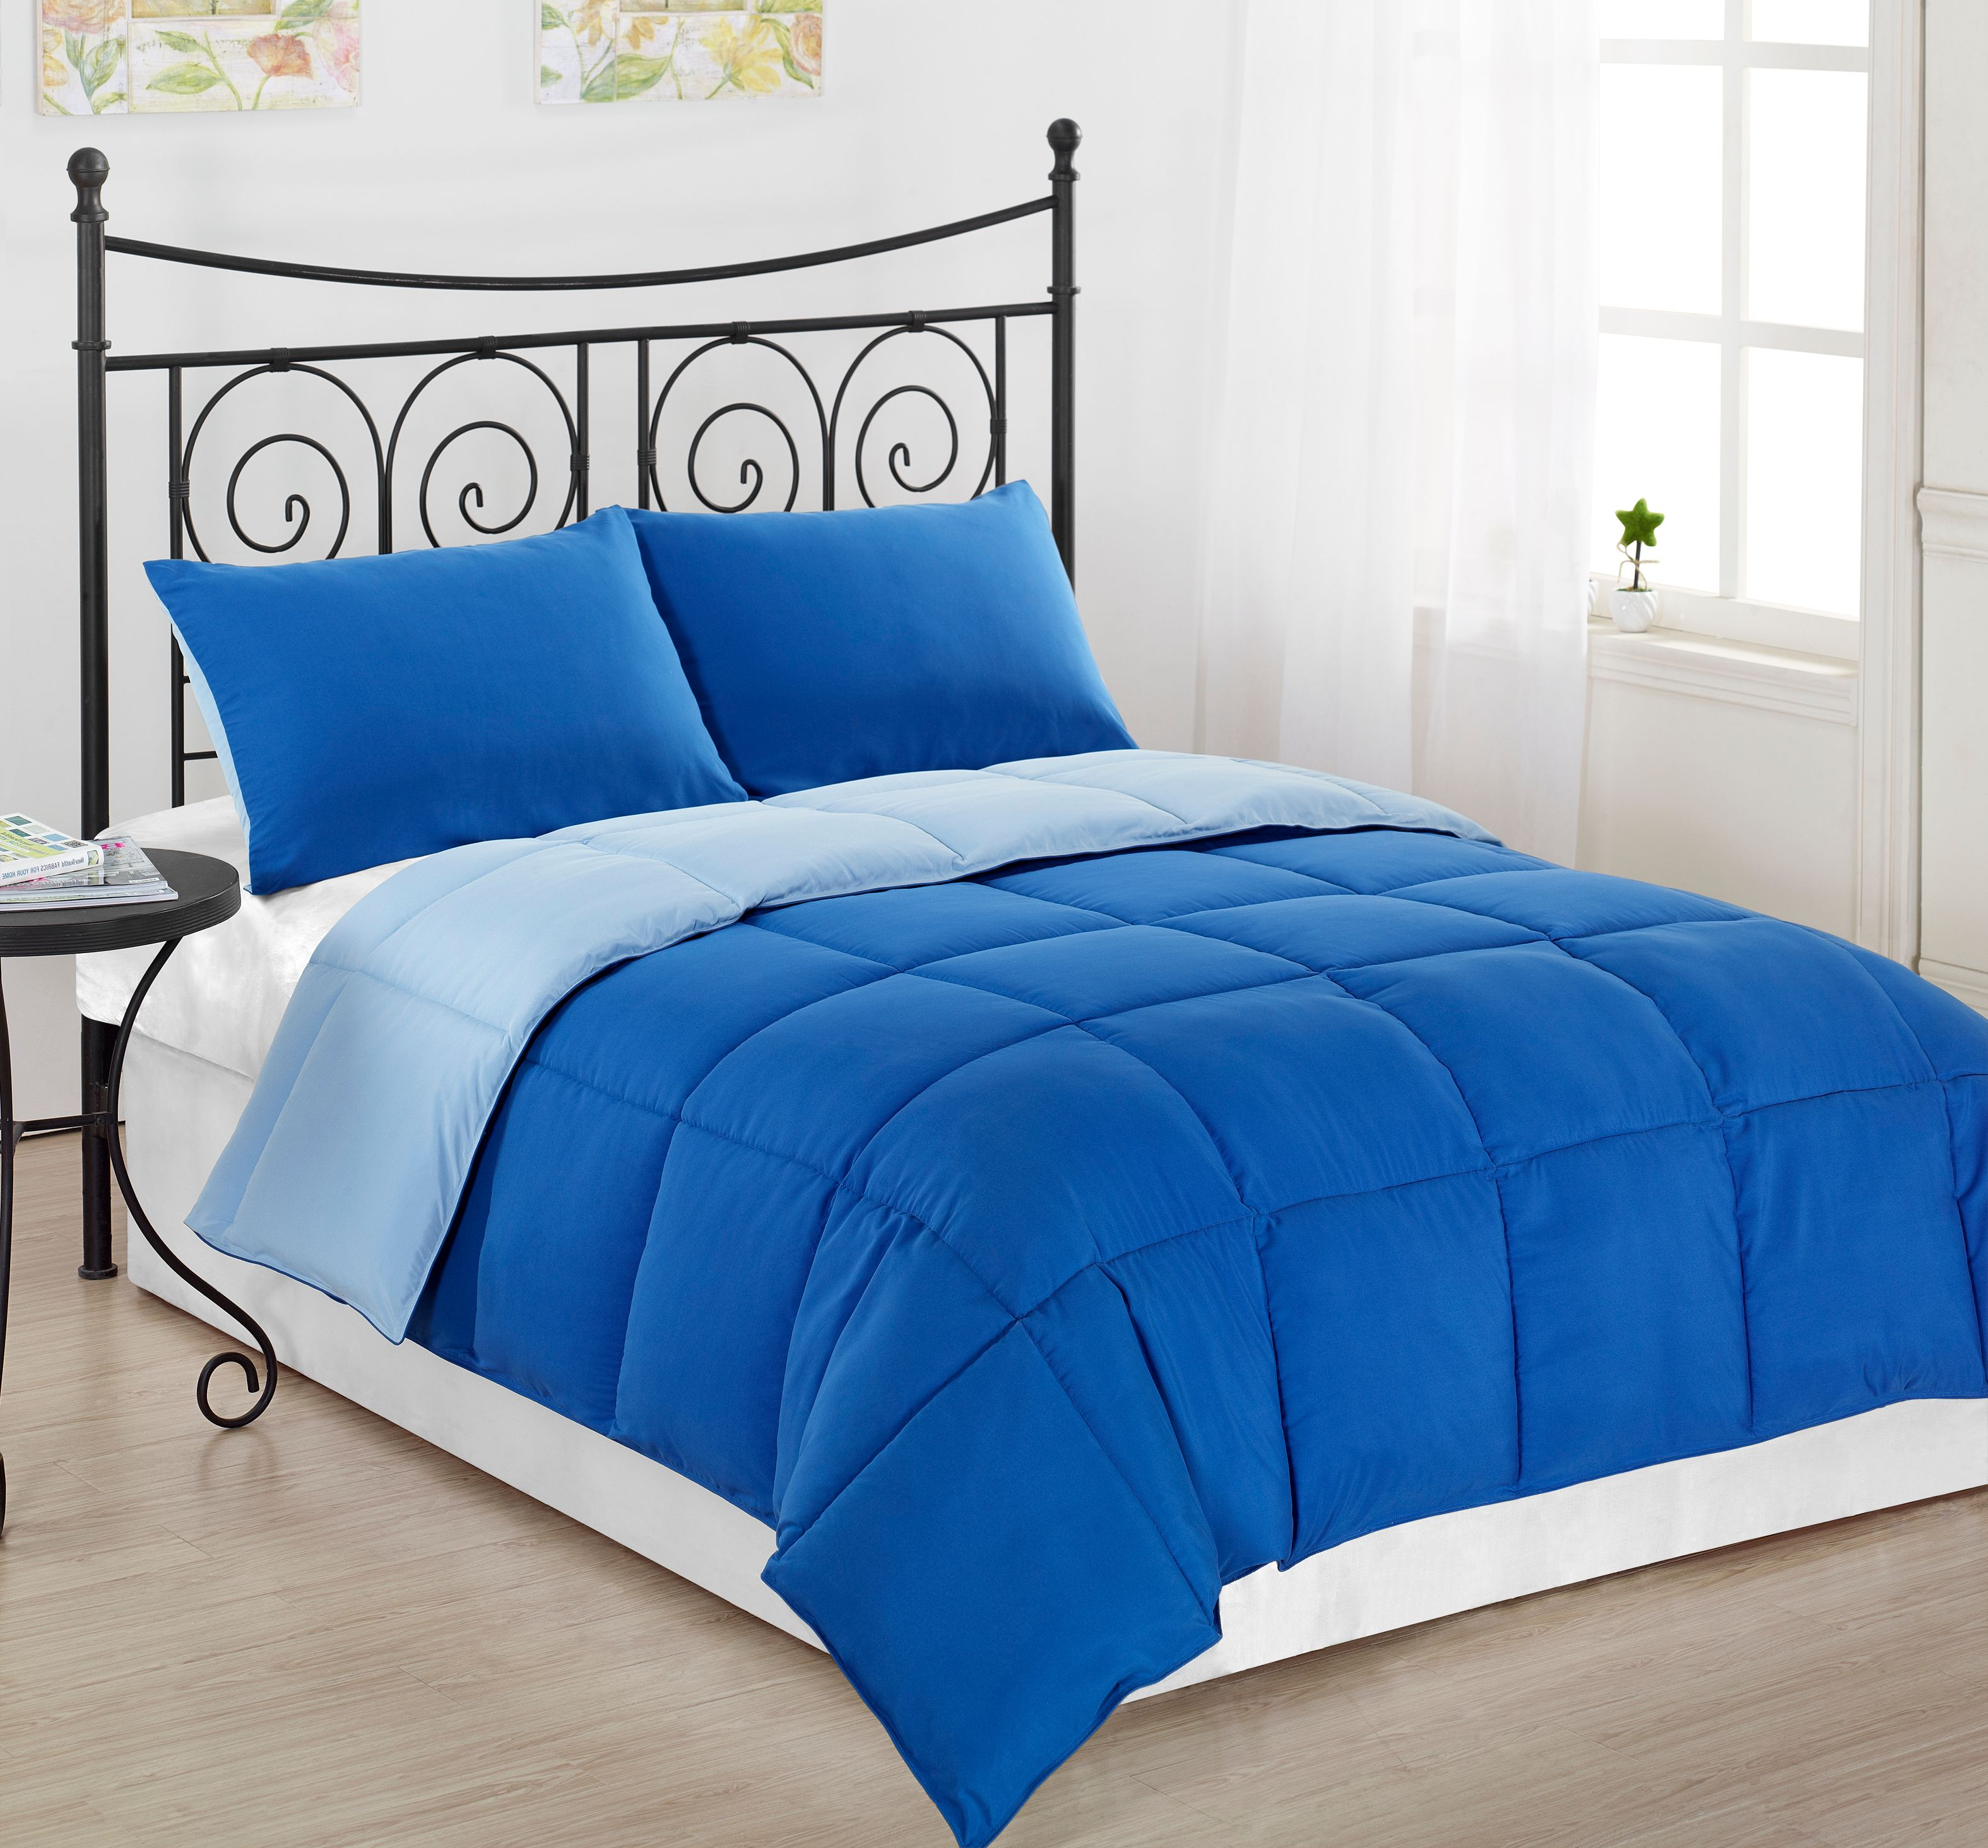 Reversible 2pc TWIN Size Down Alternative Comforter set Royal Blue/Light Blue Bed Cover